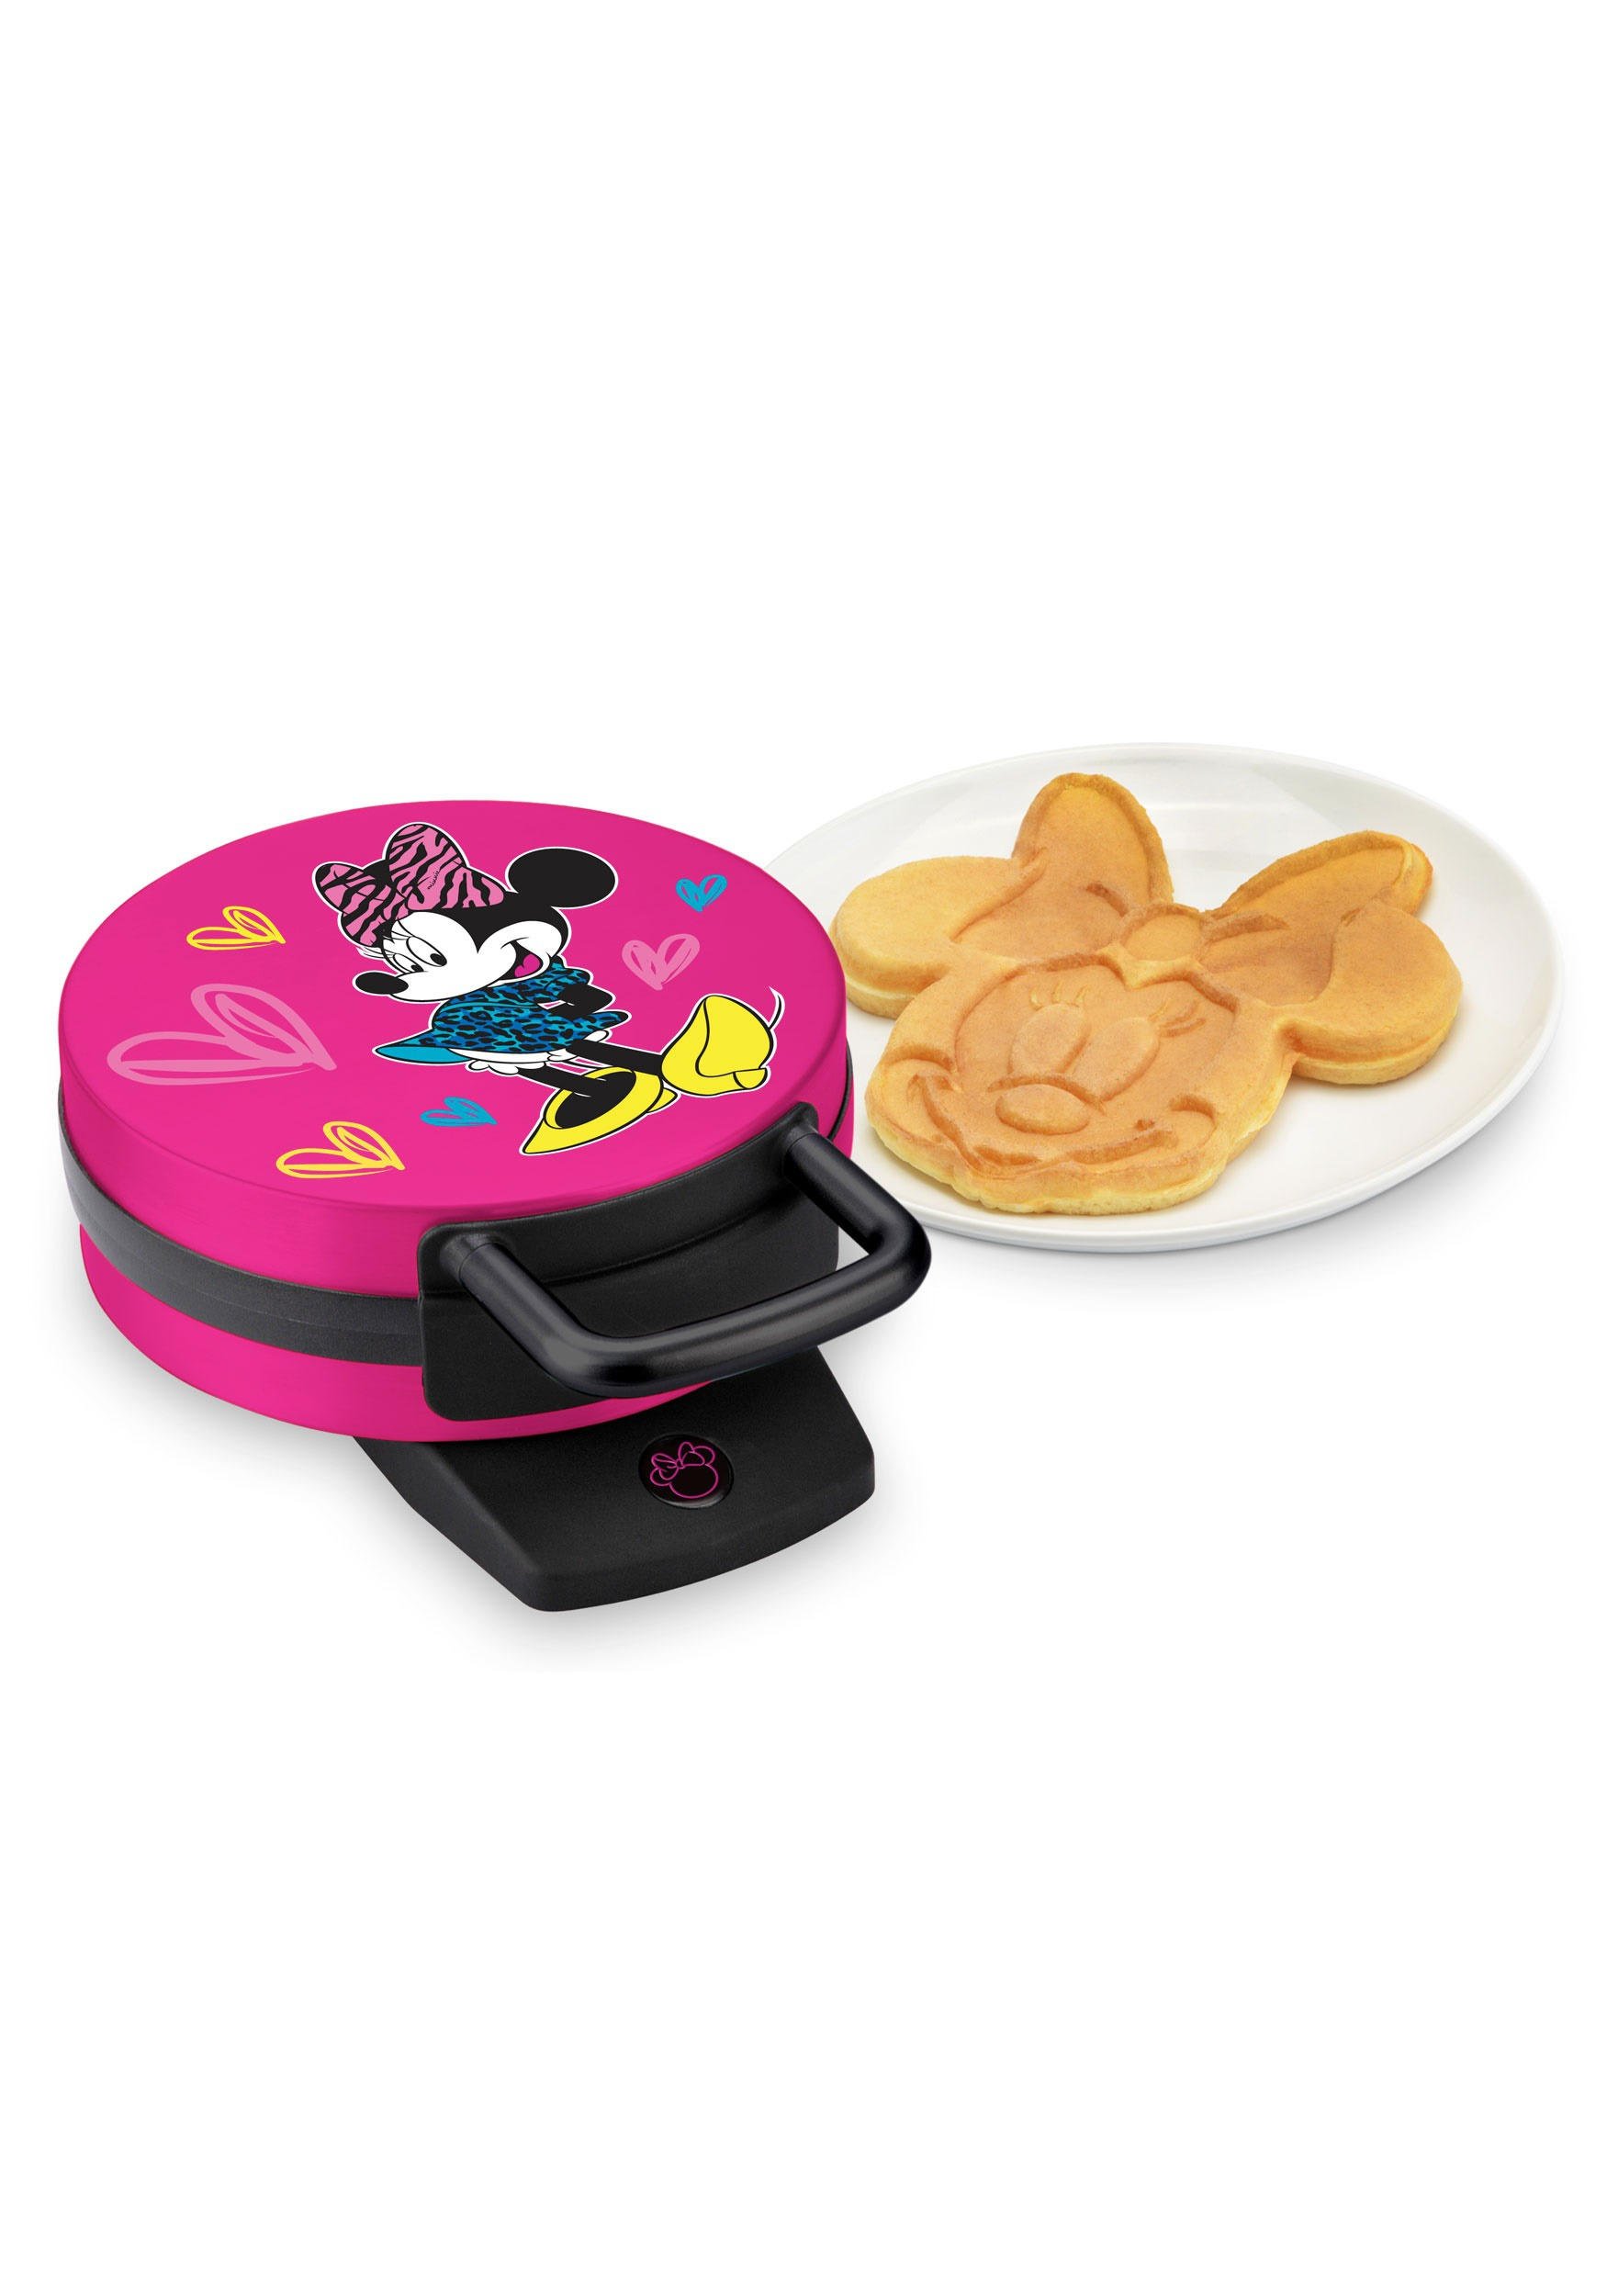 Disney Minnie Mouse Face Waffle Maker